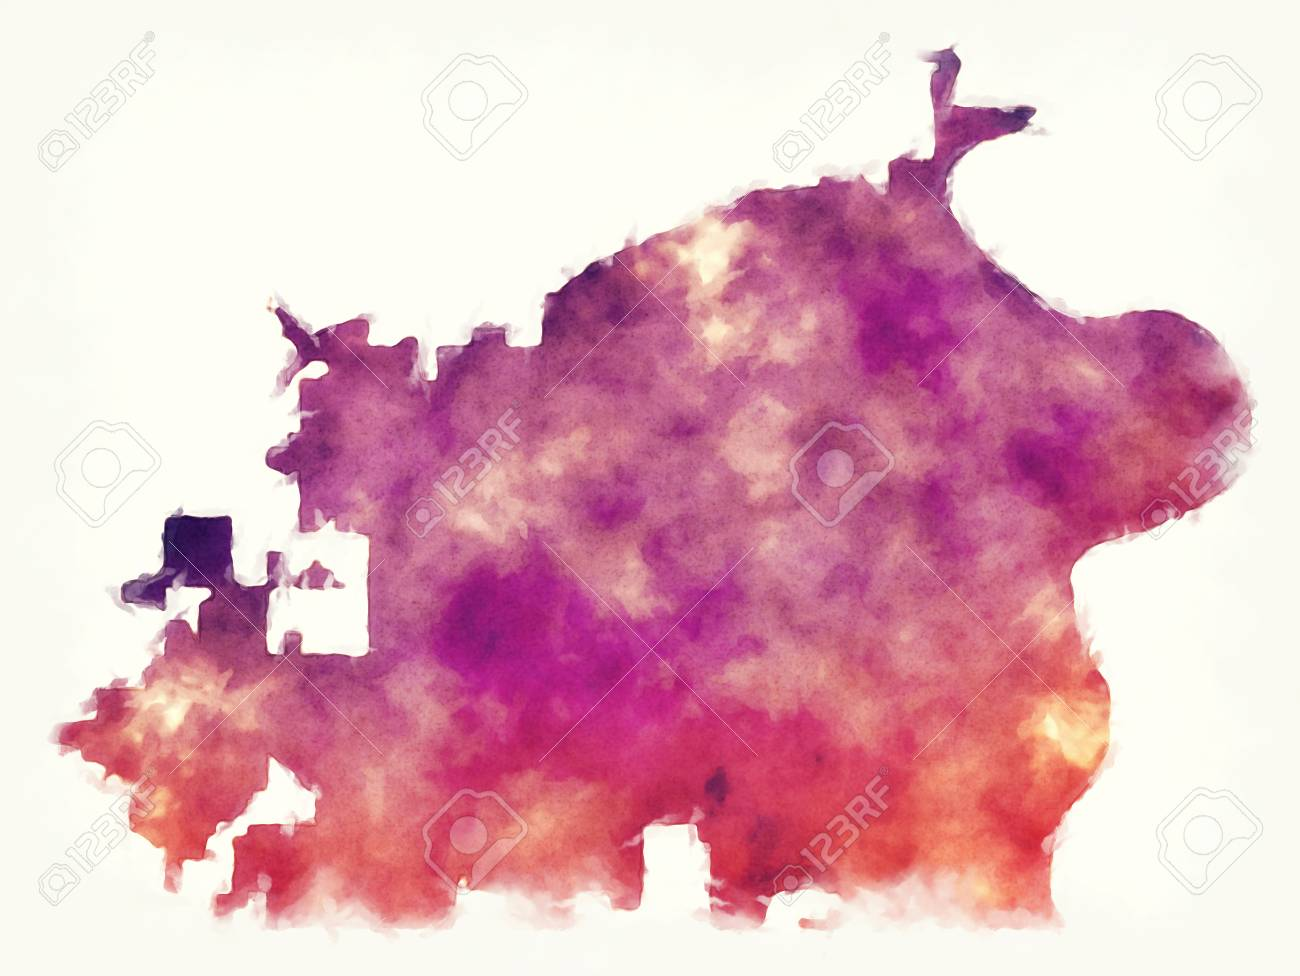 Omaha Nebraska City Watercolor Map In Front Of A White Background